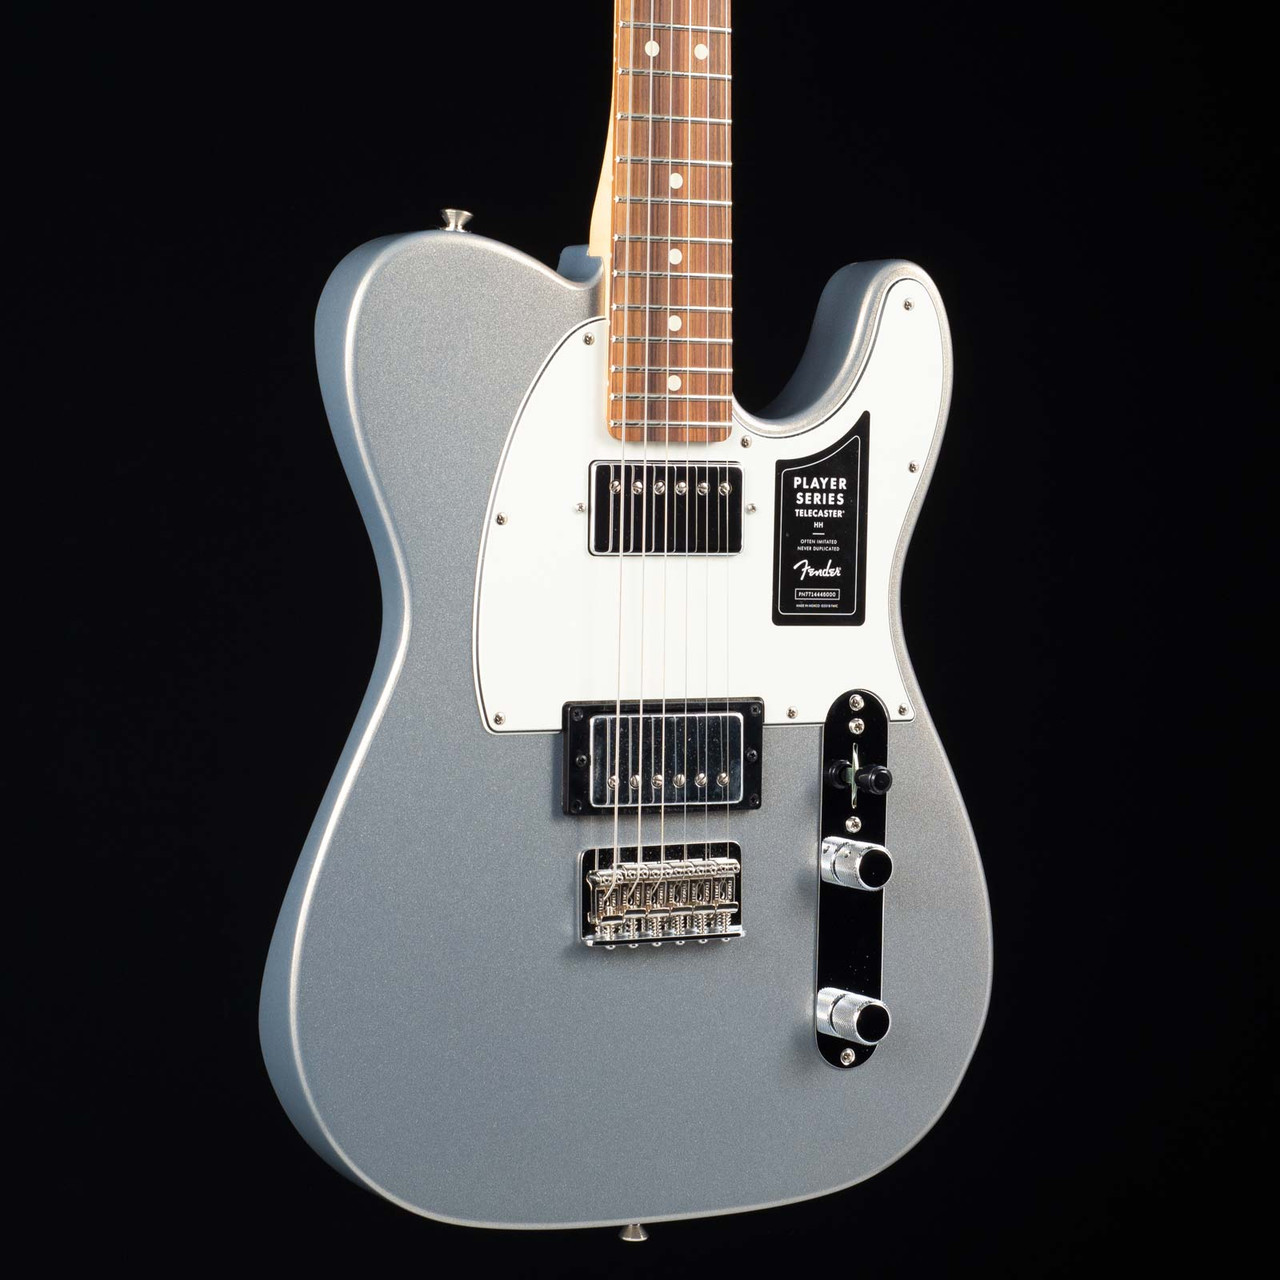 Fender Telecaster Hh >> Fender Player Telecaster Hh Silver 011 At Moore Guitars